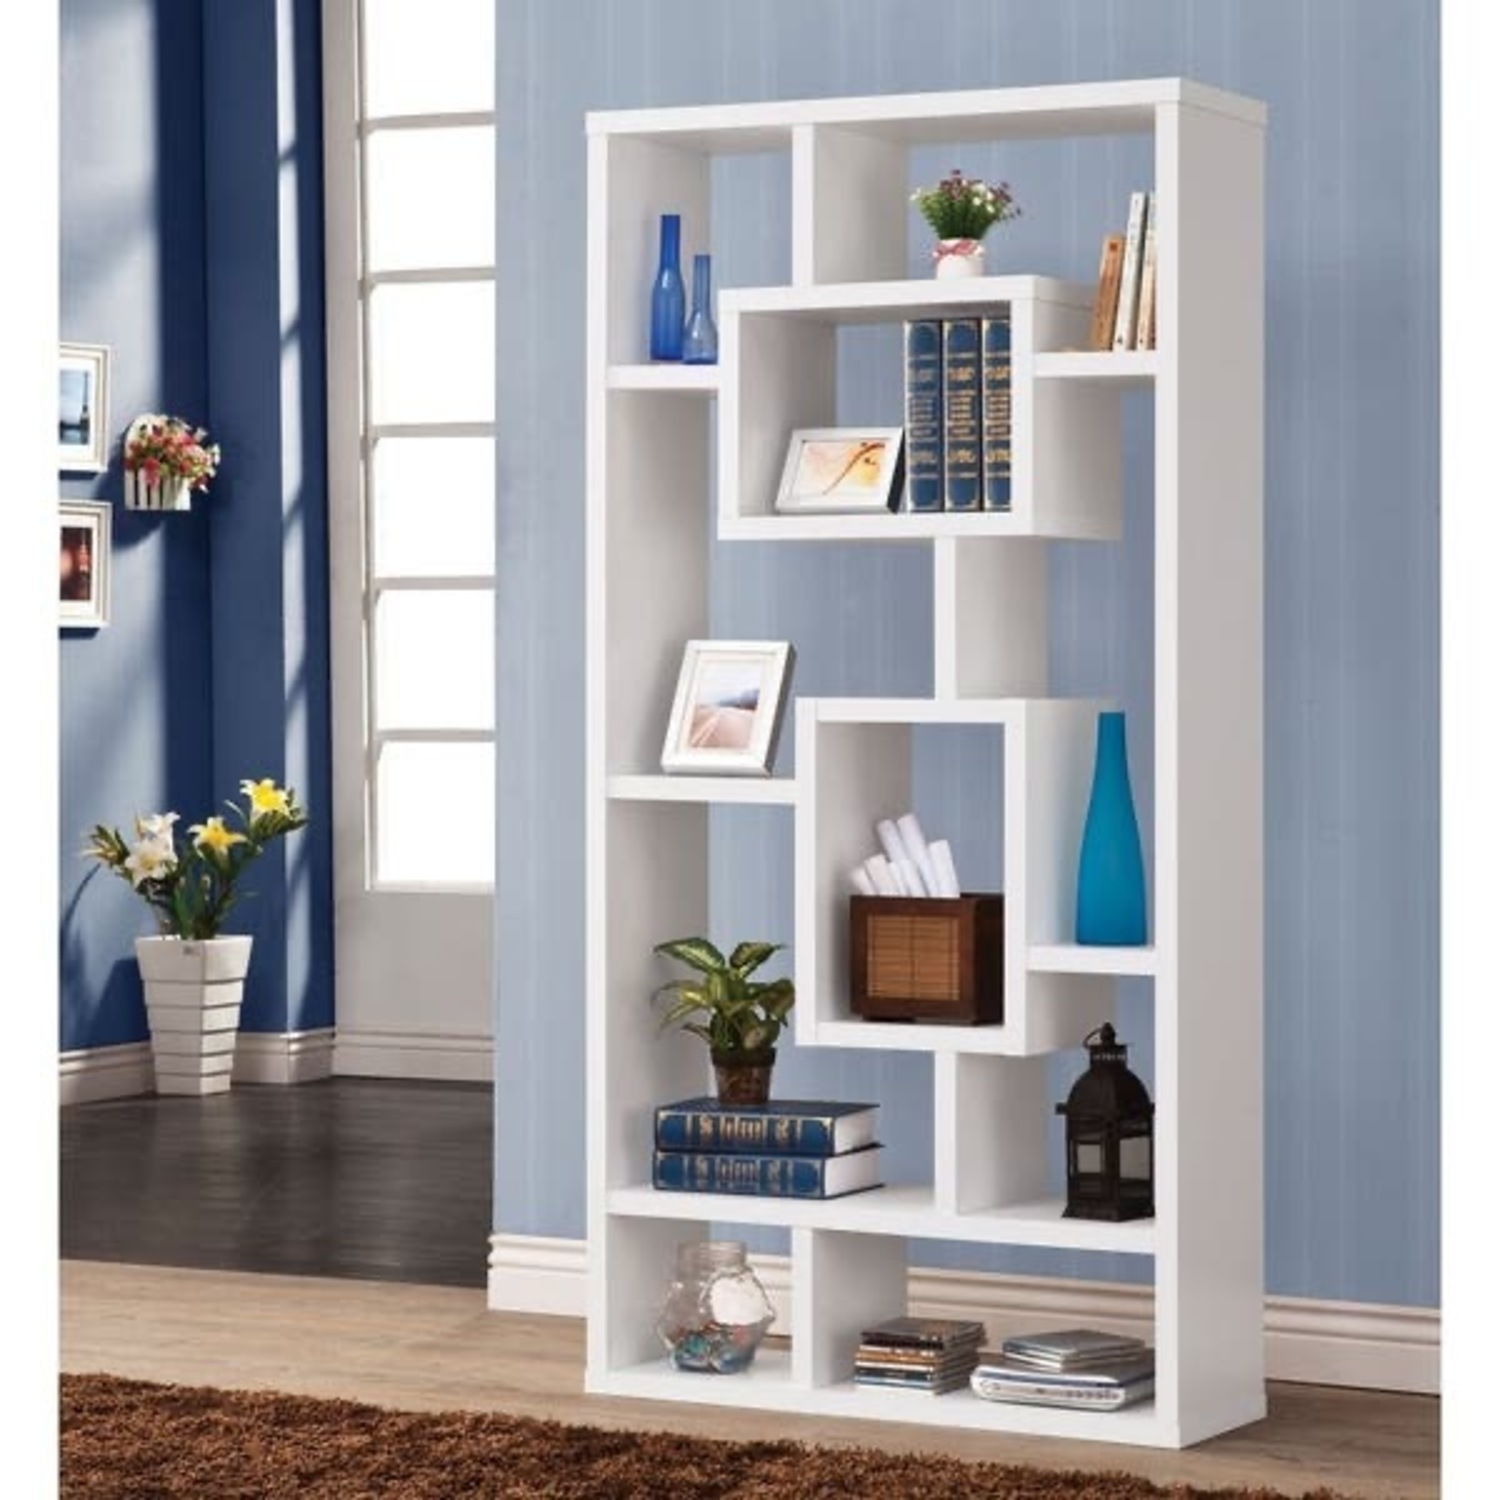 White Geometric Shelves - image-1